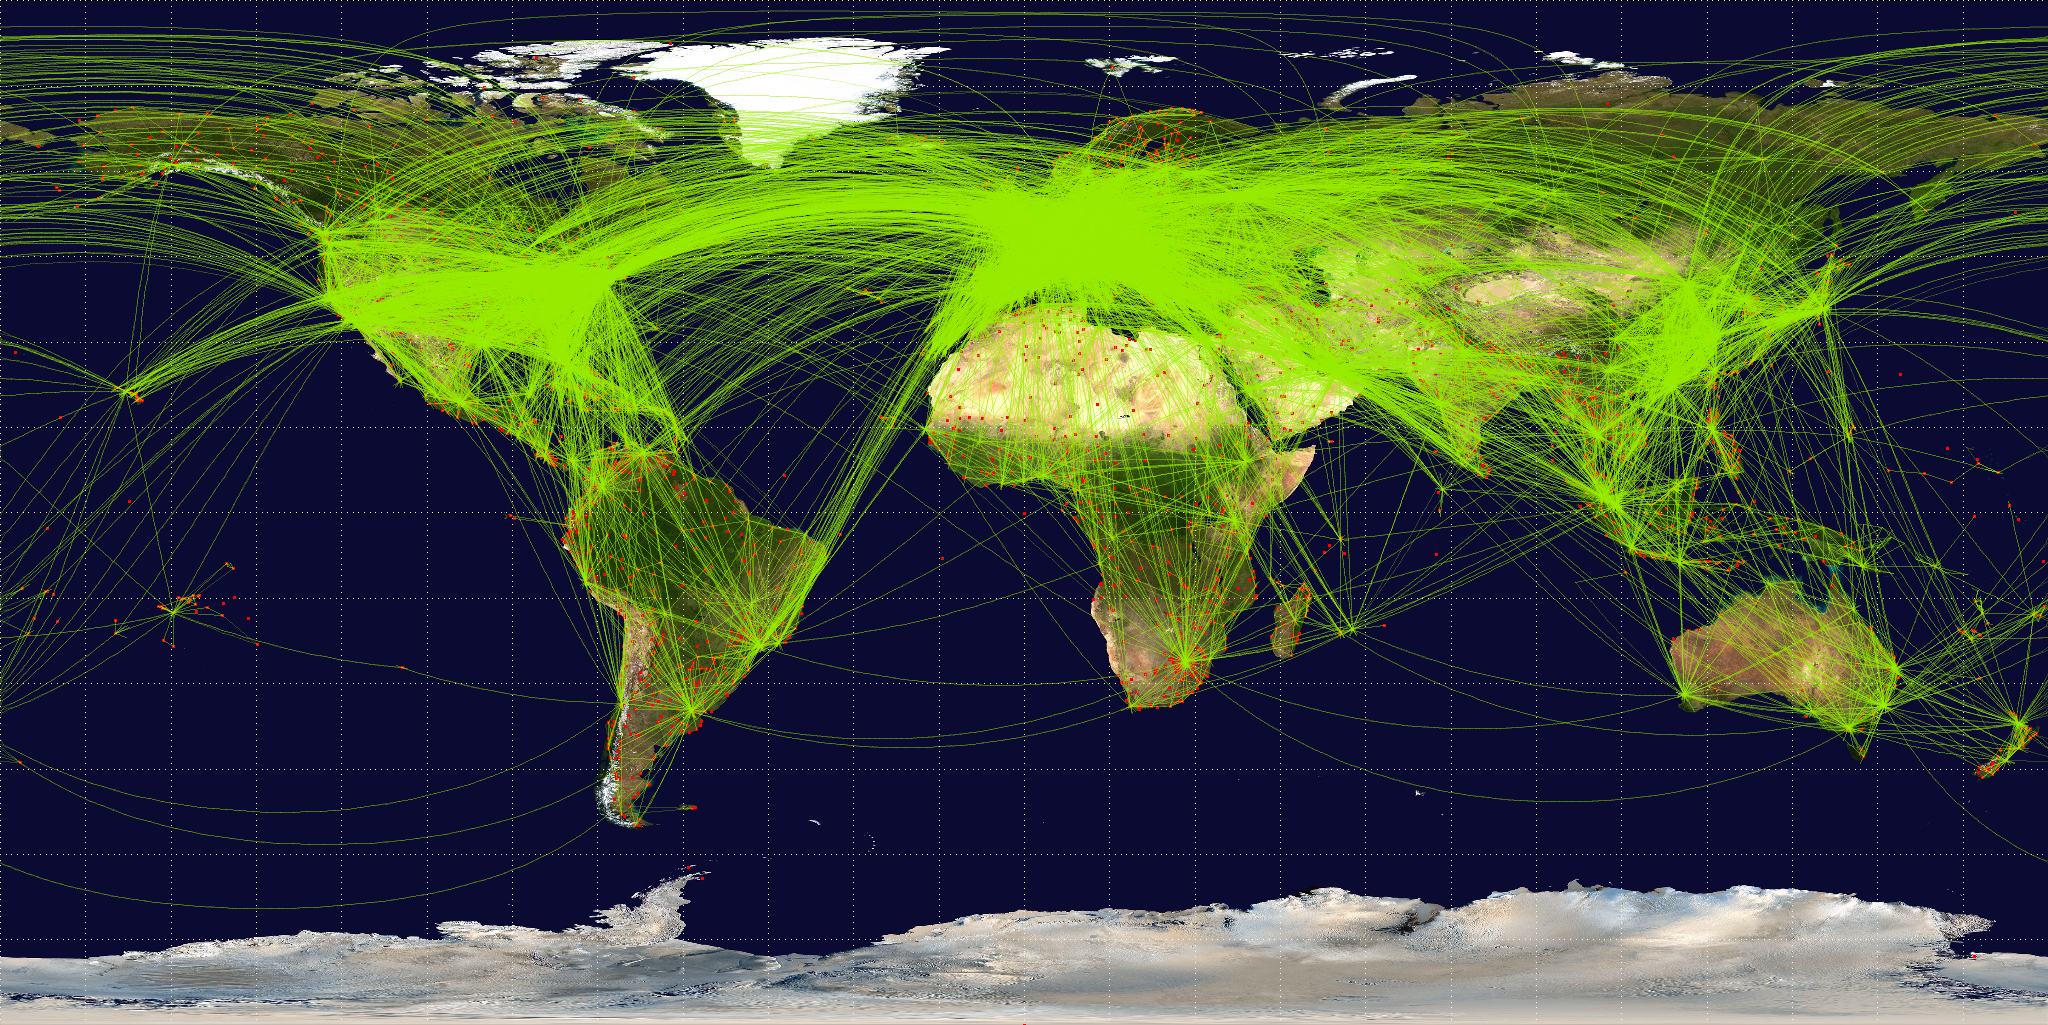 More than 54,000 air travel routes were scheduled for 2008, according to Airline Route Mapper. Image: Jpatokal, basemap from NASA, rendering by OpenFlights (Open Database License).